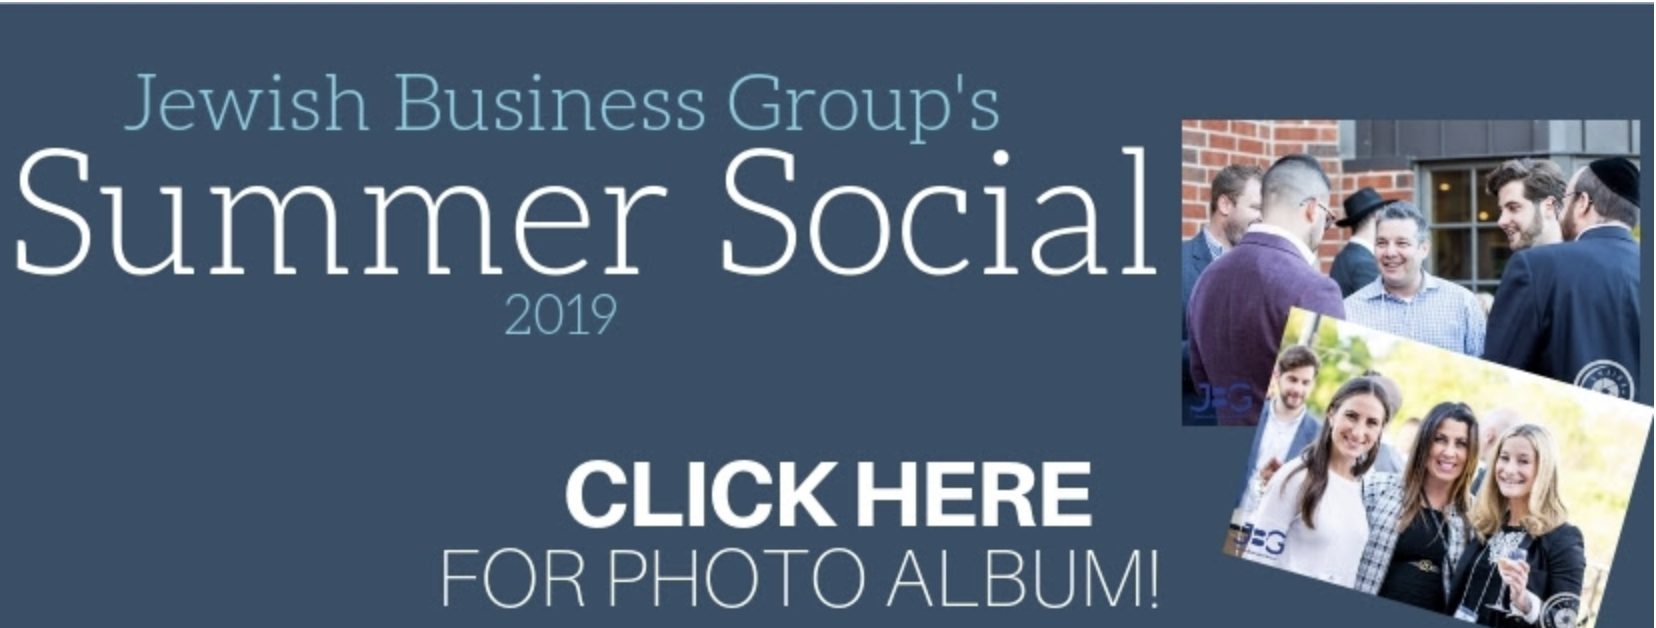 JBG Summer Social - June, 2019